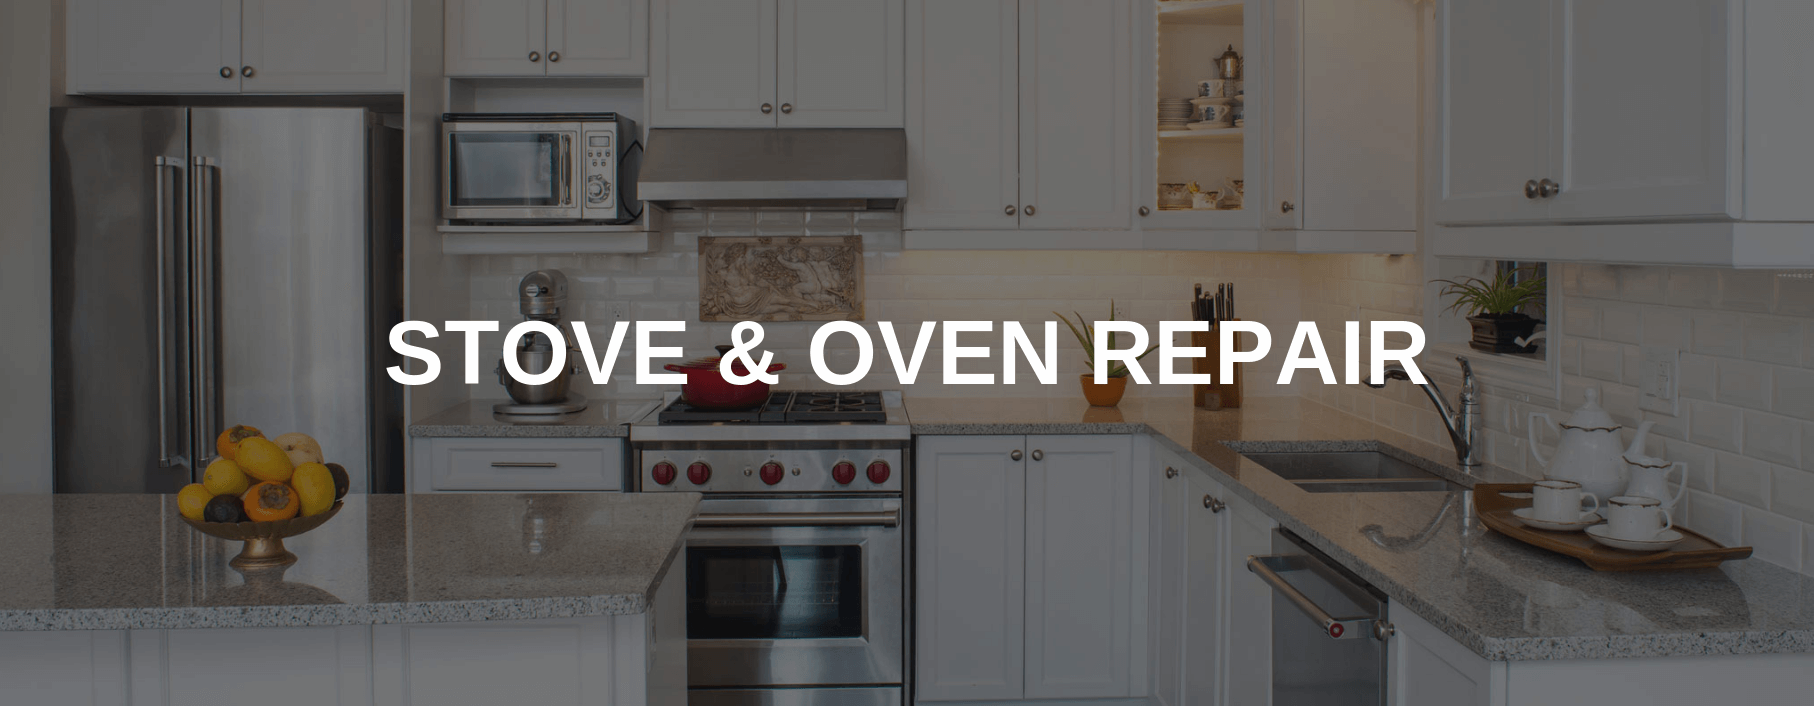 stove repair arlington